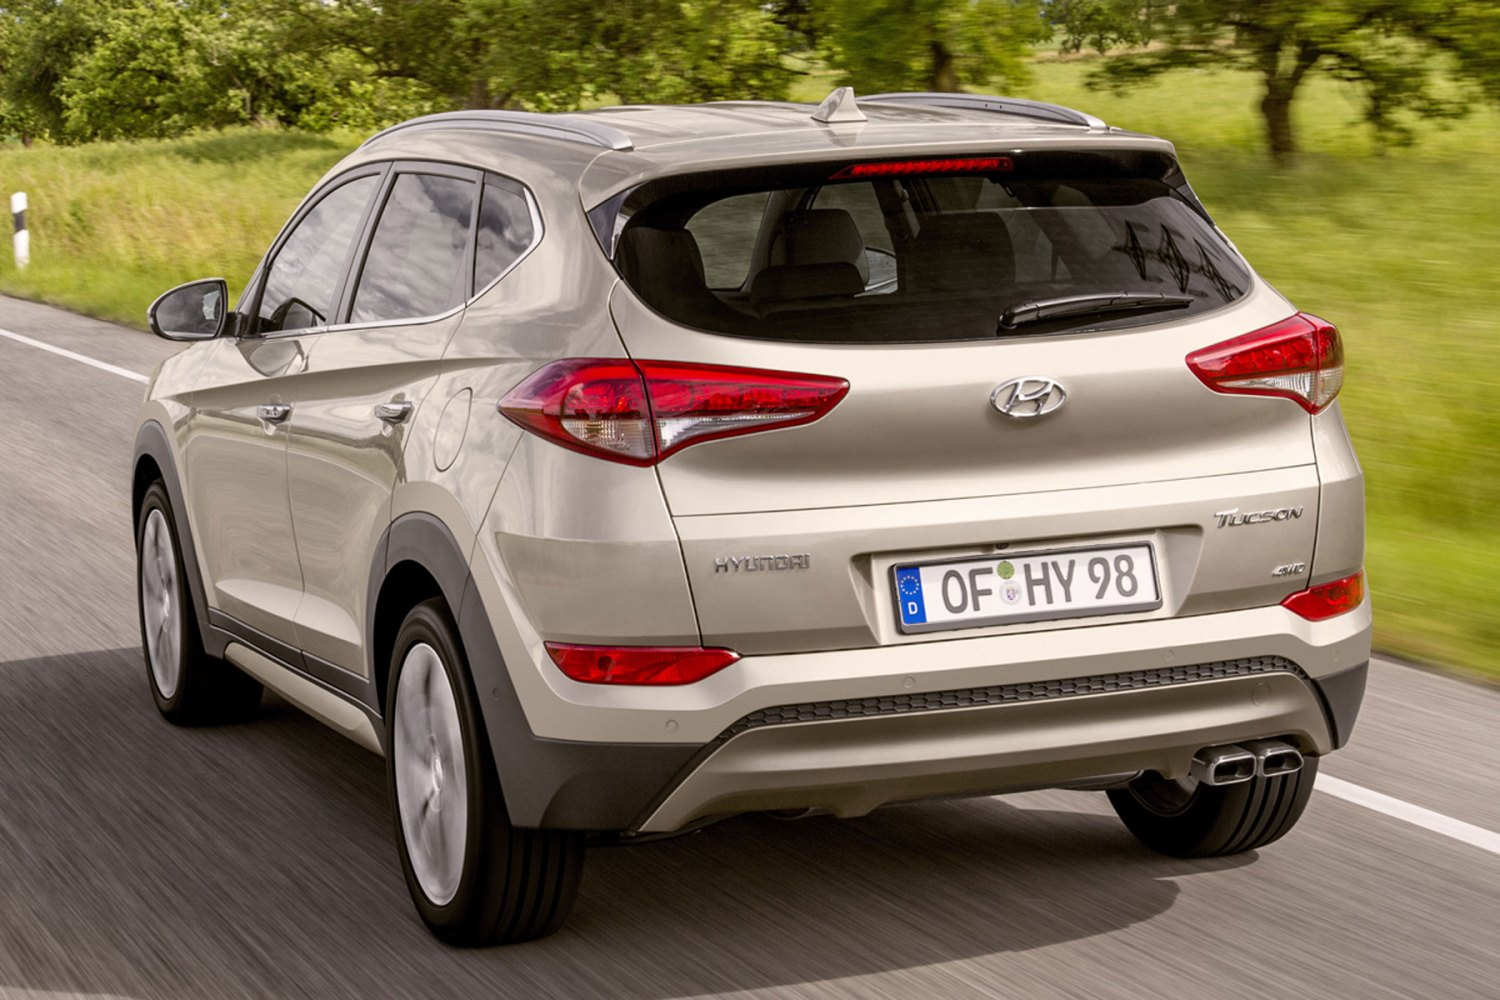 Hyundai Tucson: Running costs